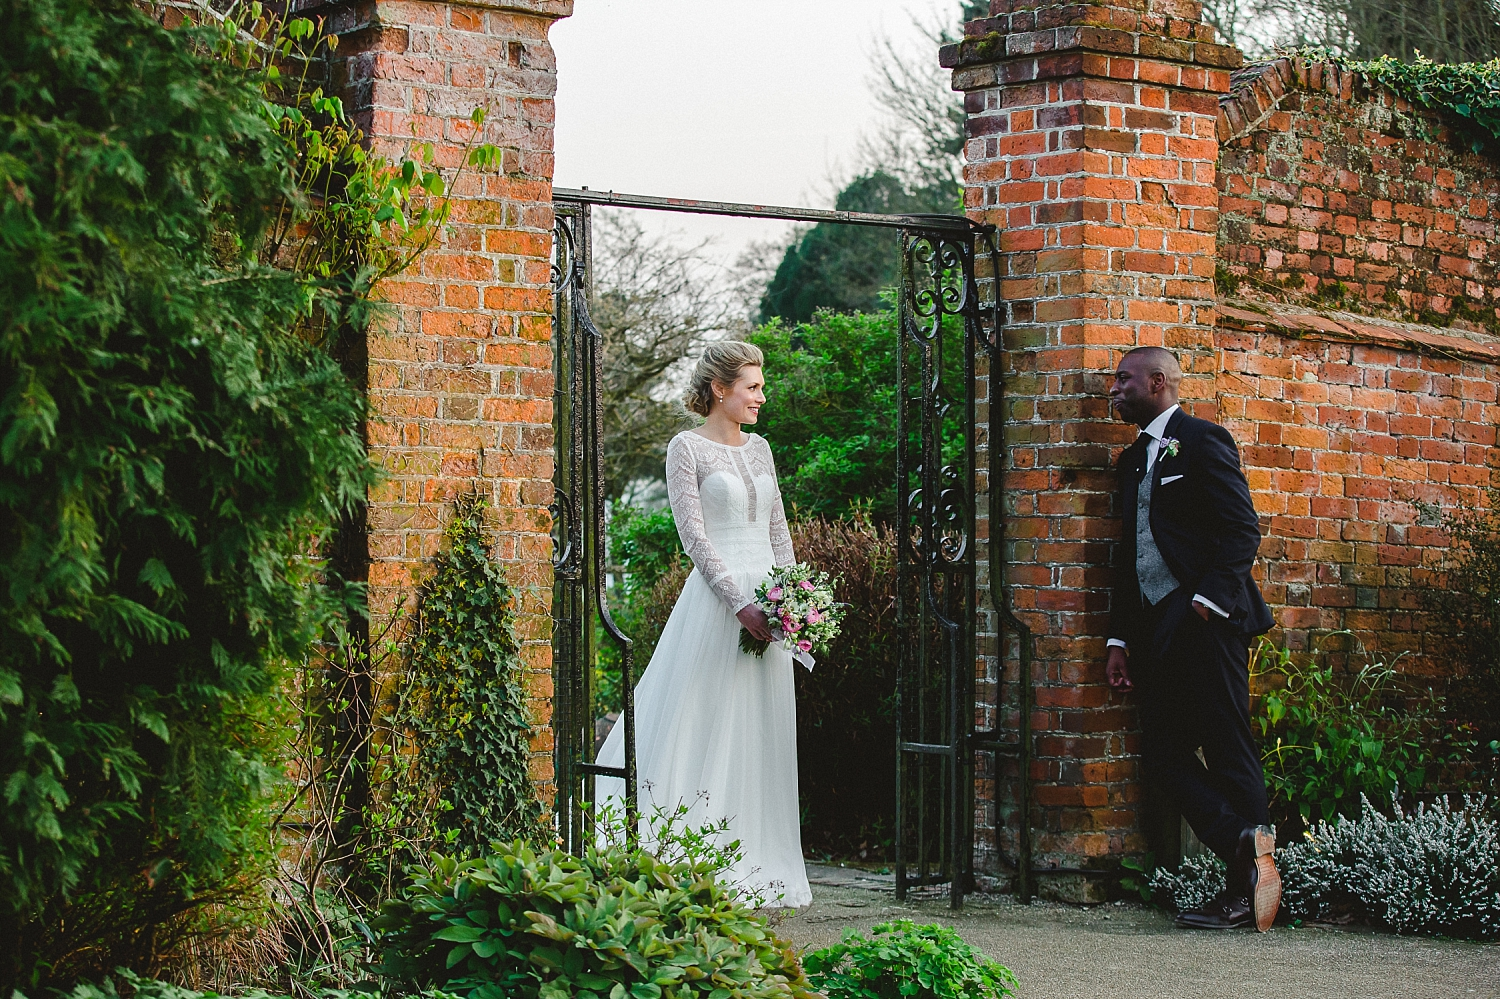 Gaynes Park Wedding Photographer - Portrait in the Gardens